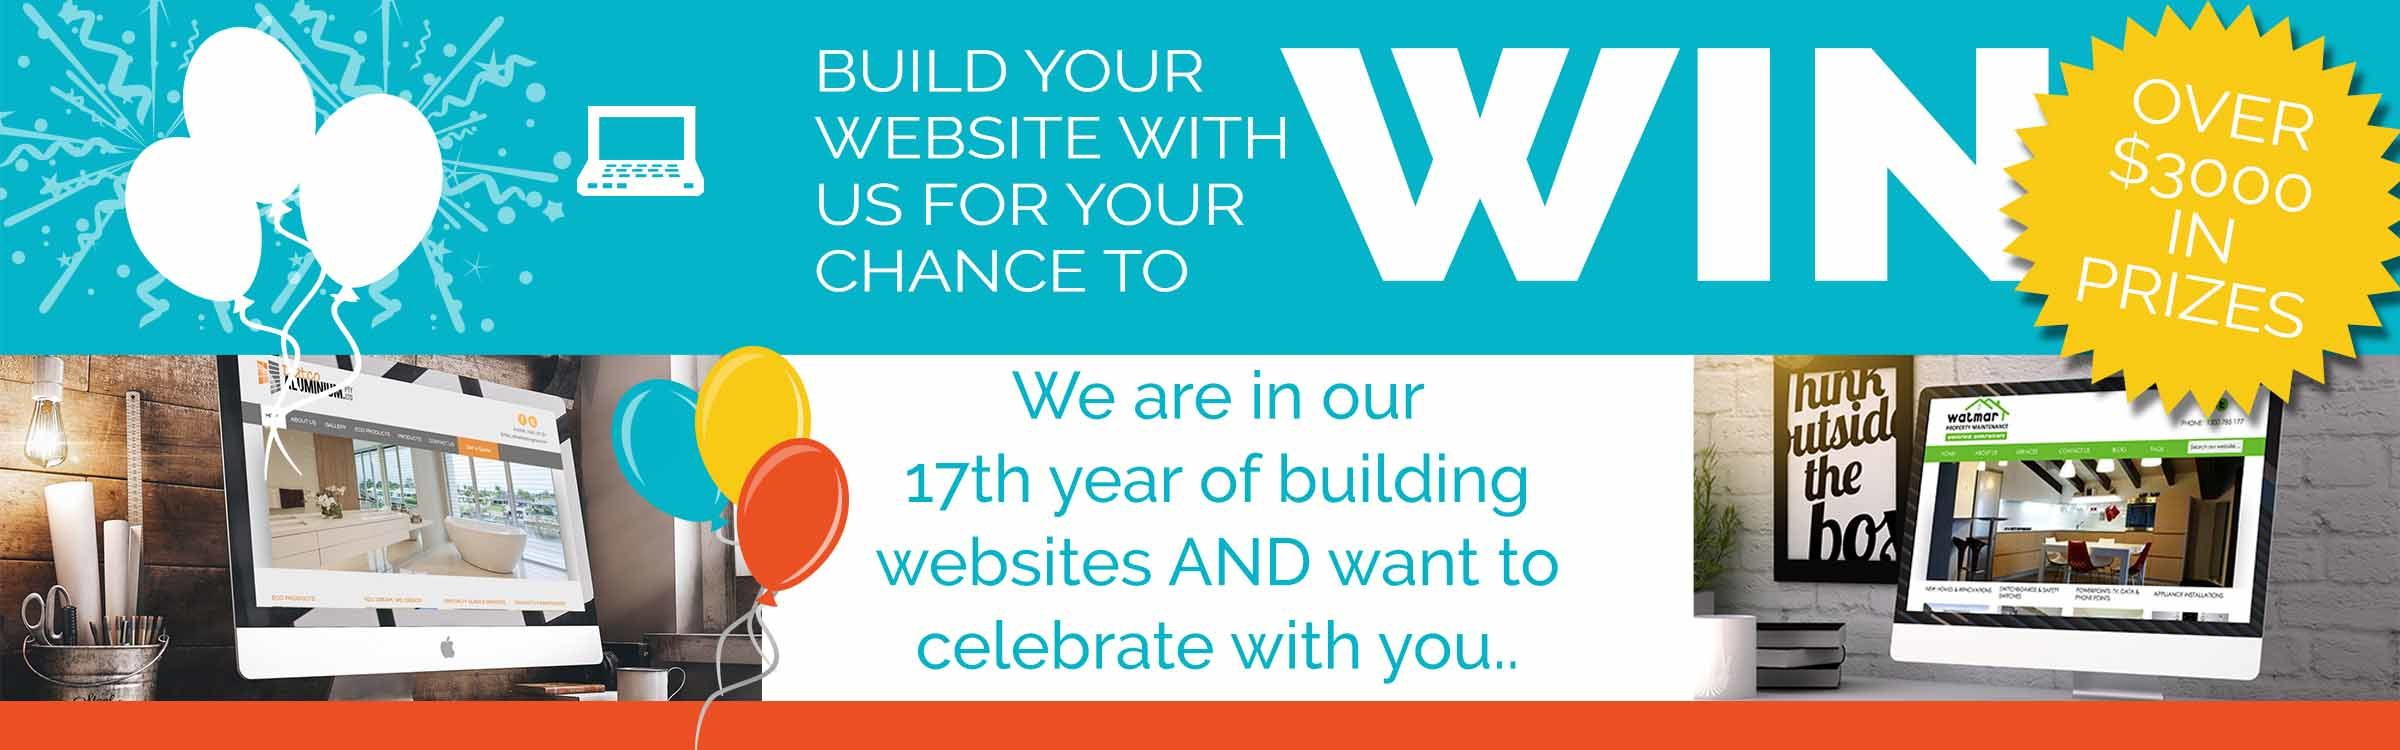 Website Header Concept Website Competition 2400x750 - Build your website with us to WIN!!